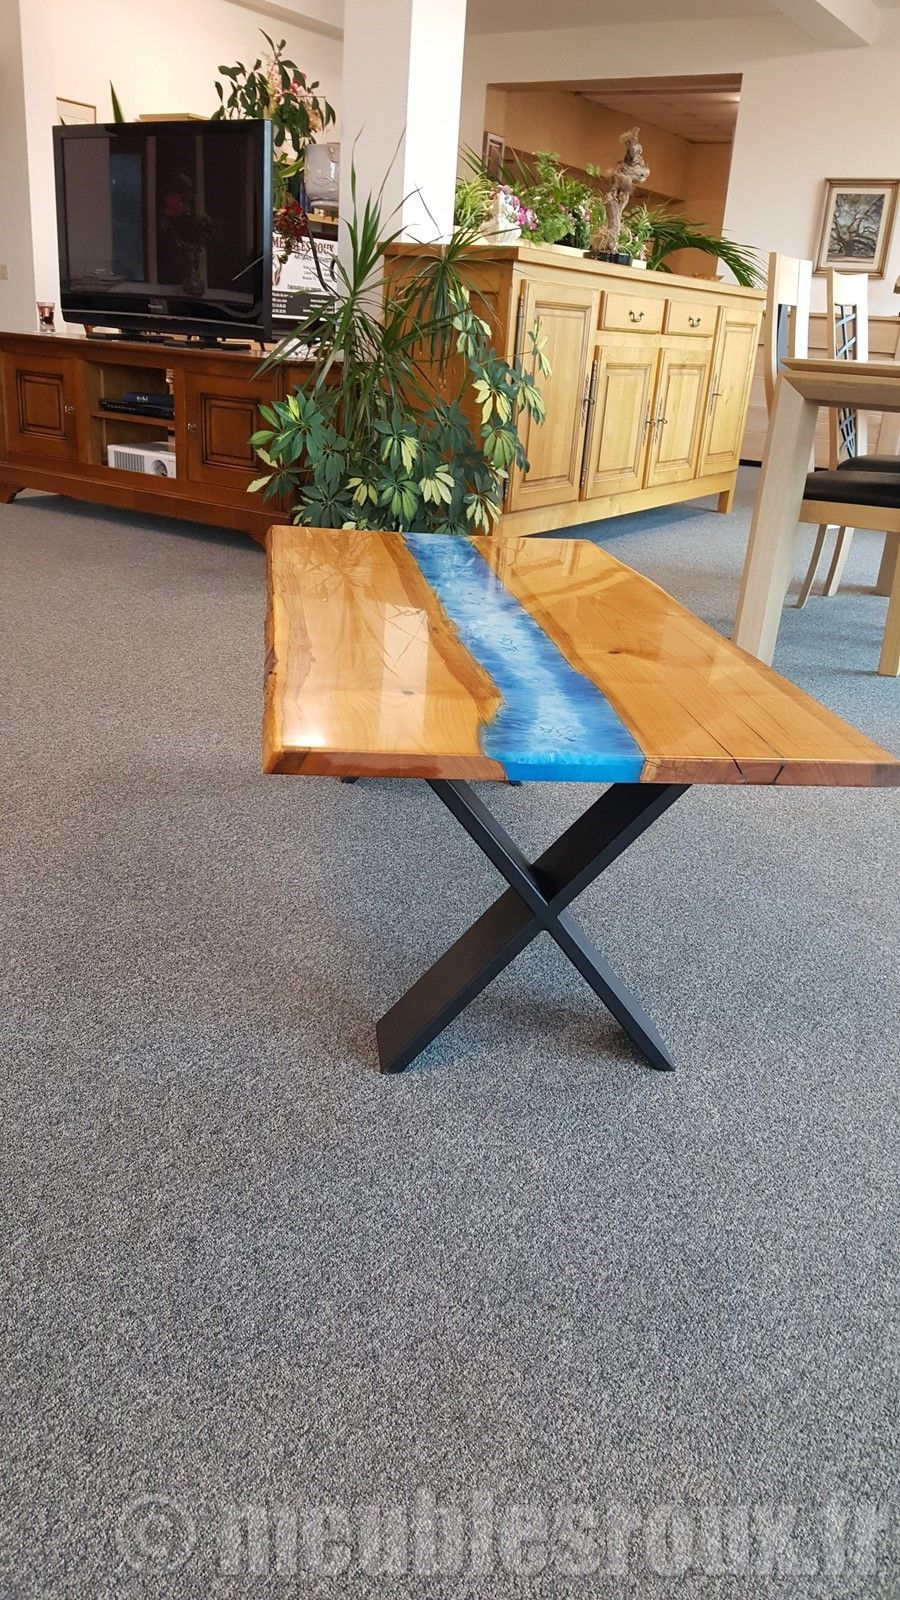 Table Basse En Merisier Et Resine Epoxy Table Basse Table Basse En Merisier Table Basse Design